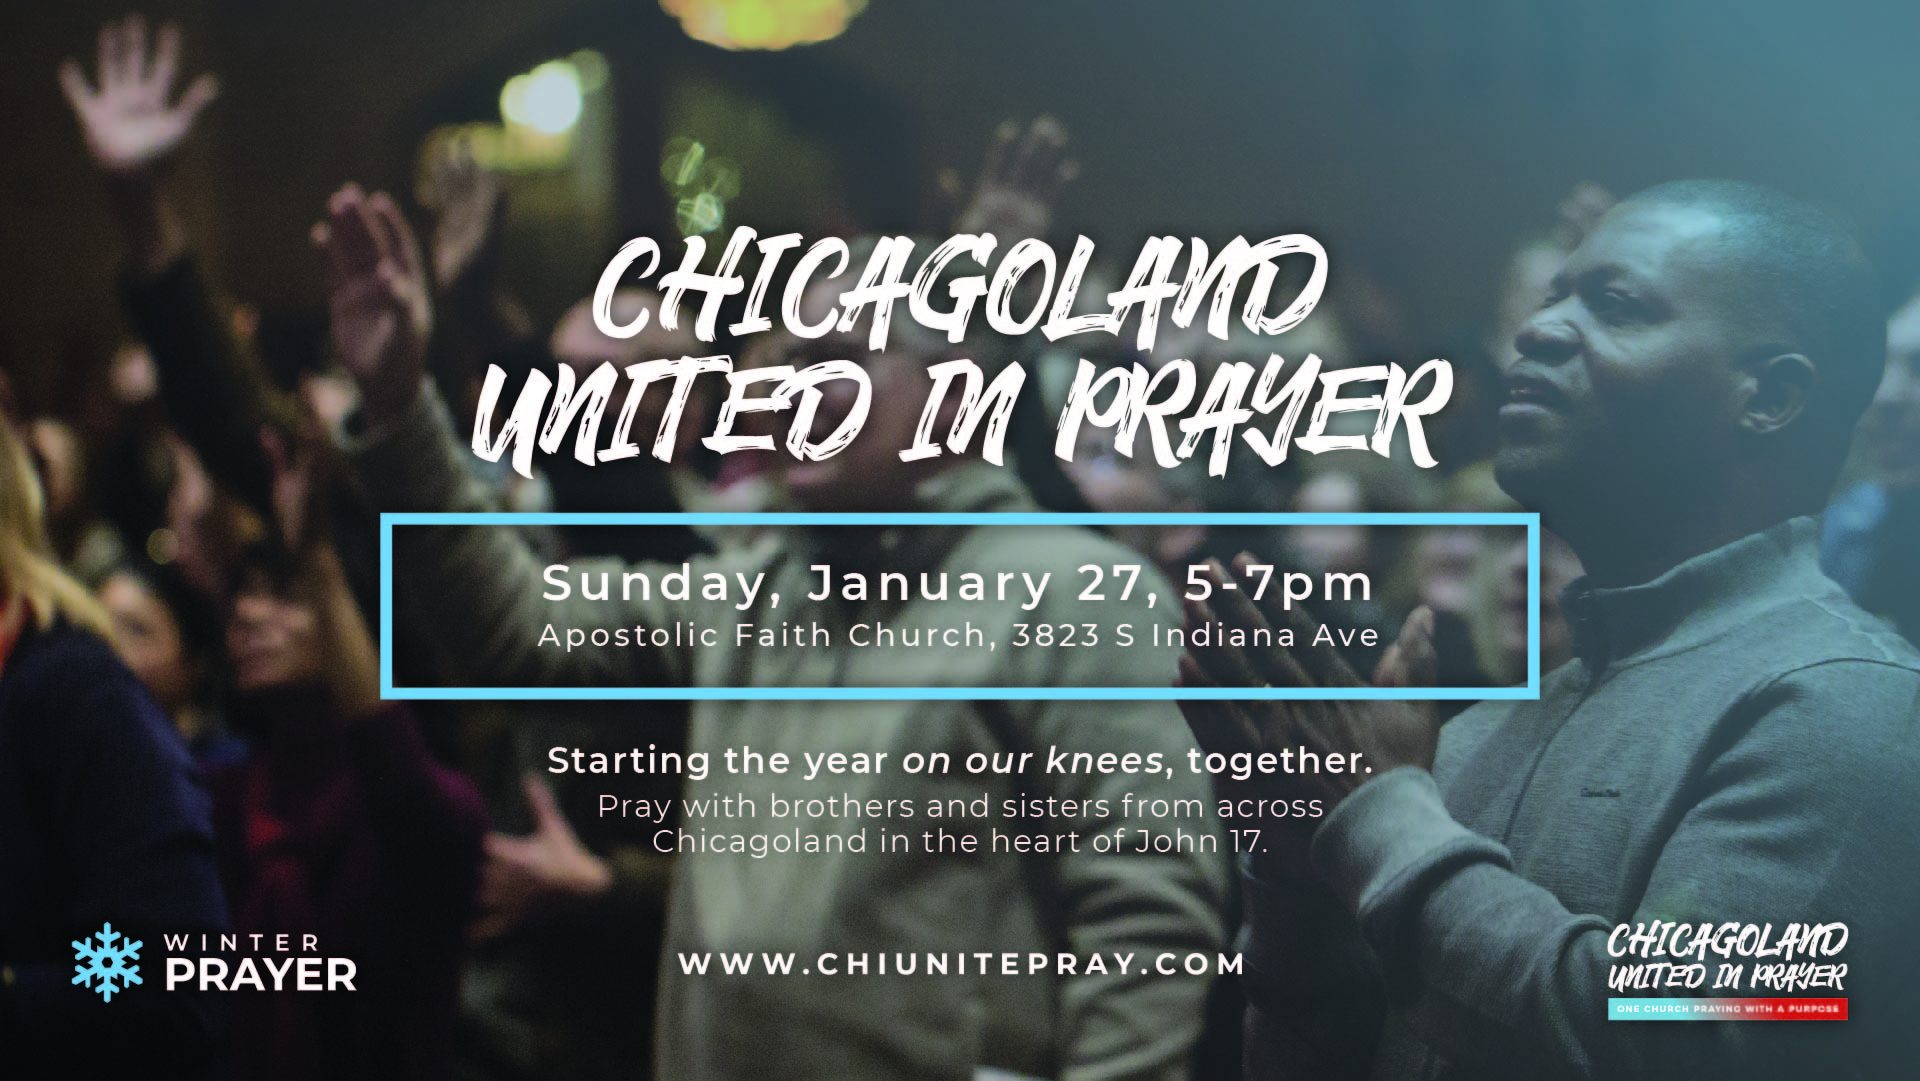 Chicagoland United in Prayer 2019